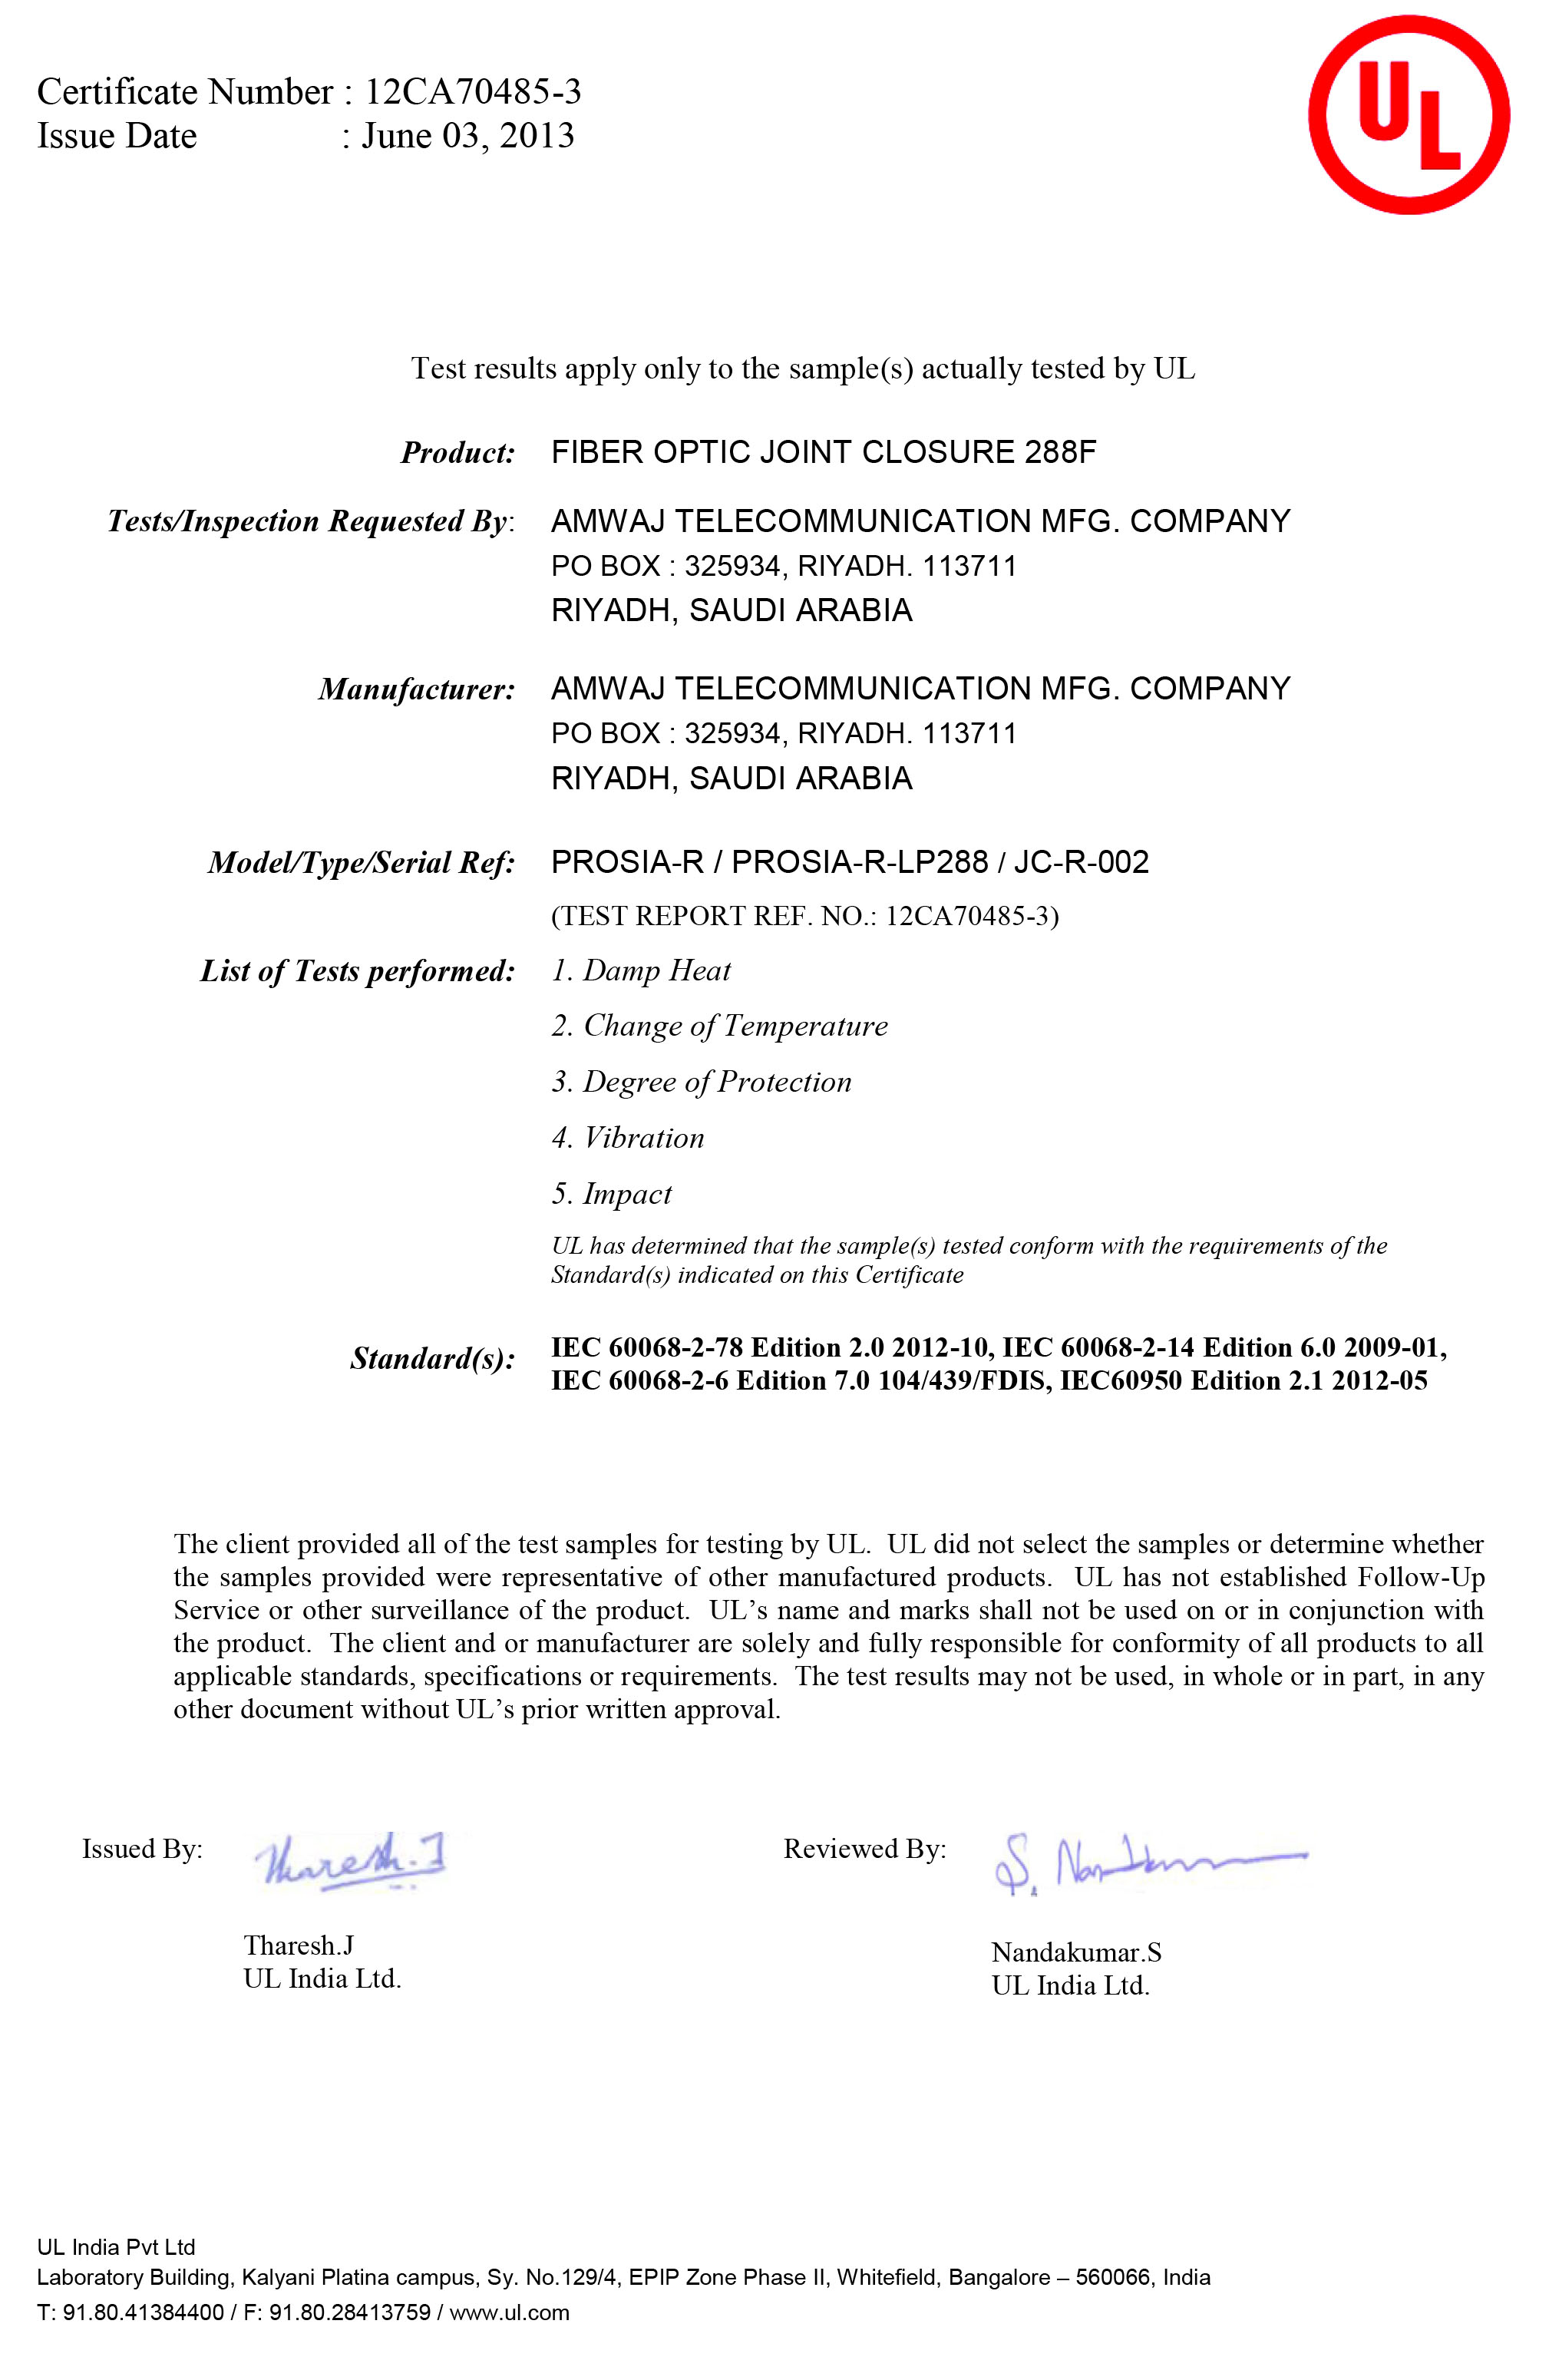 UL Certificate for FOJC 288F